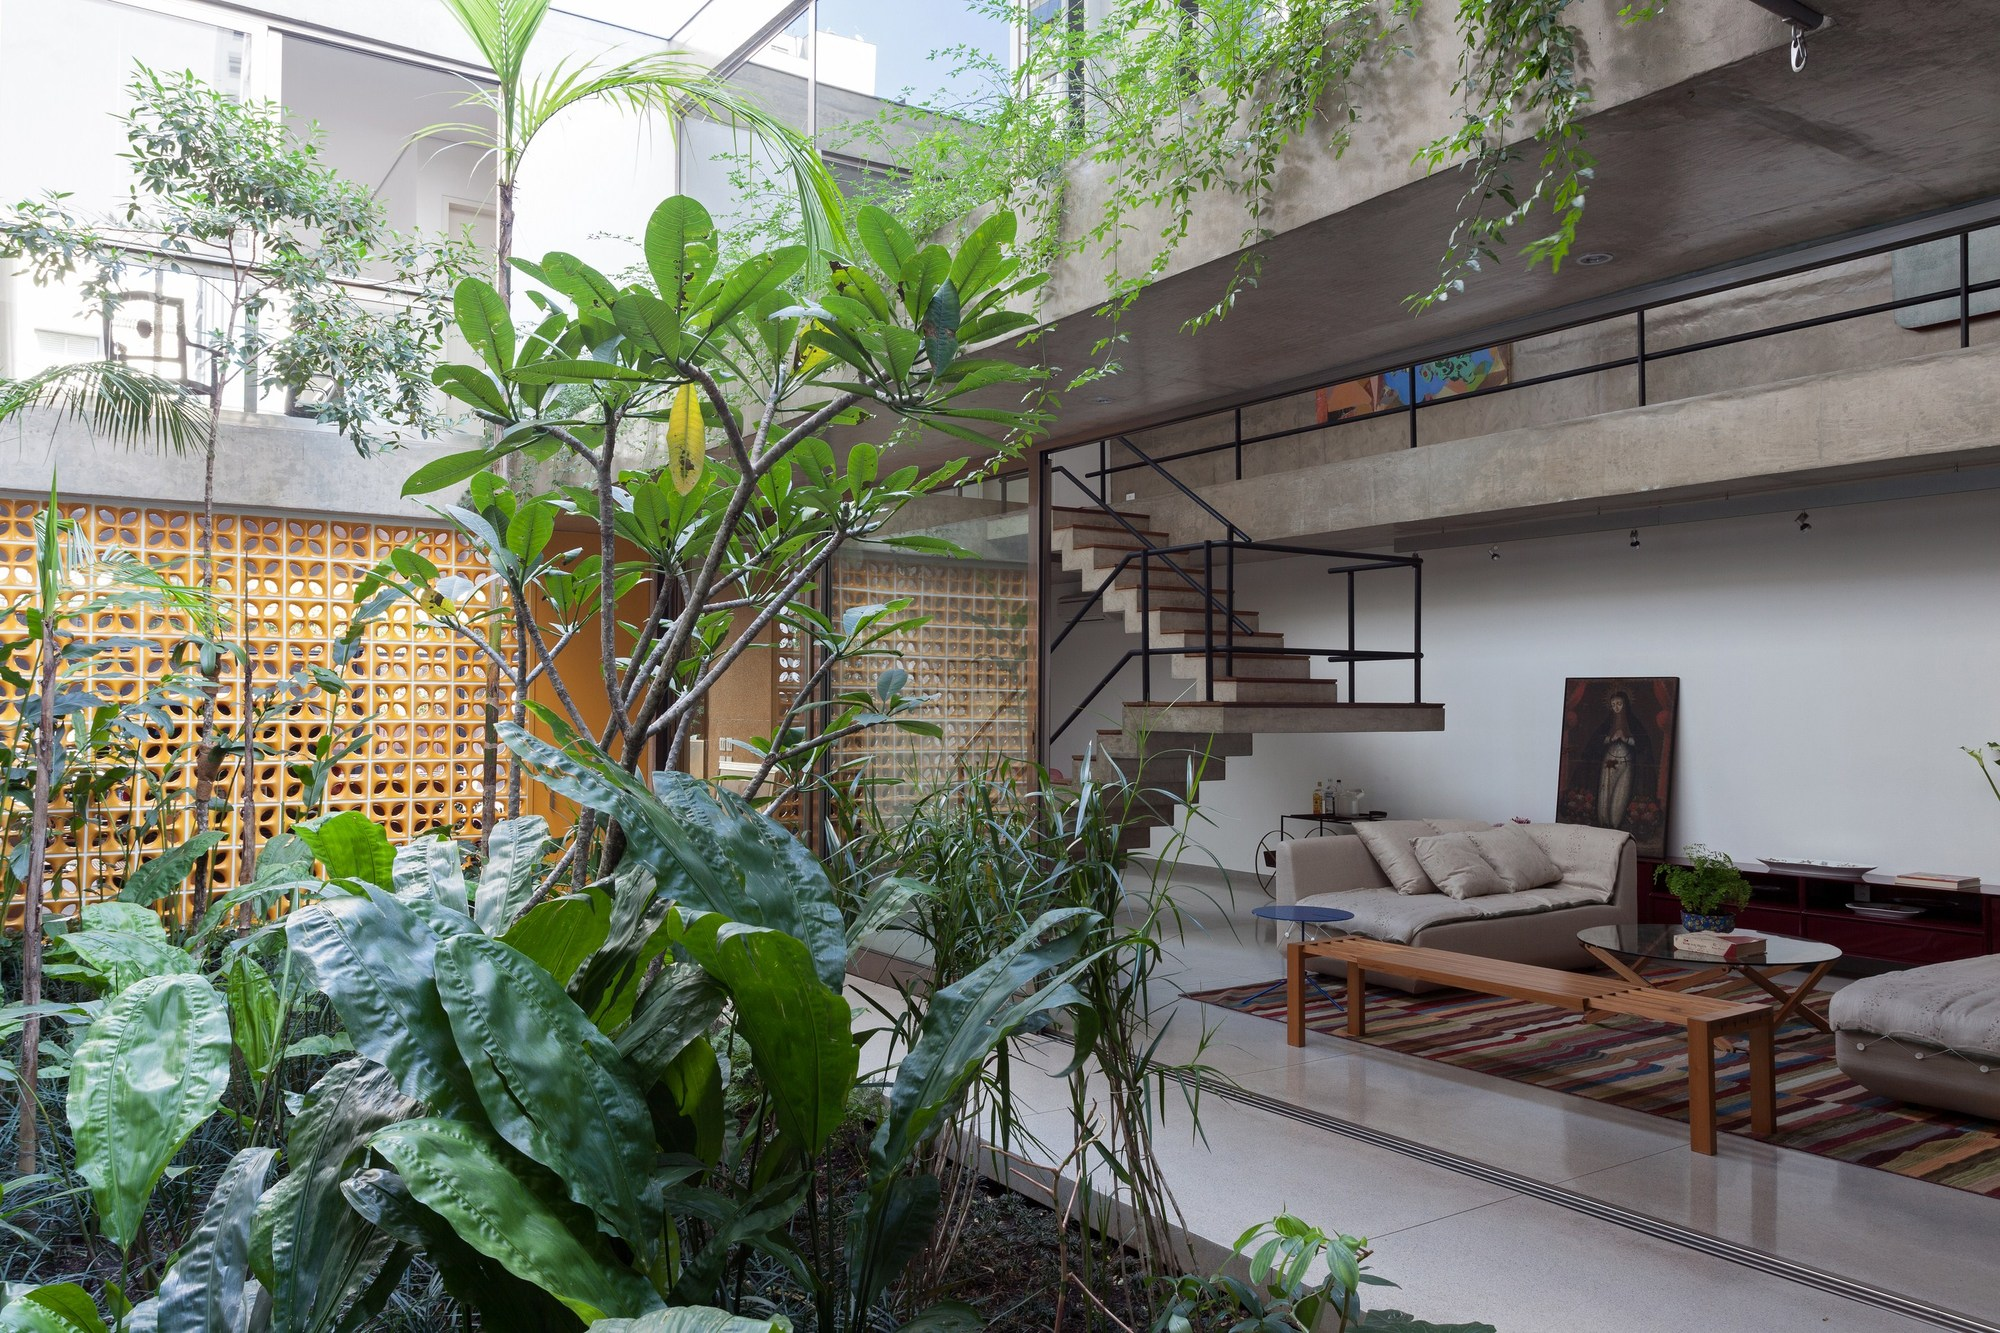 Jardins house cr2 arquitetura archdaily for Casa mansion la cima